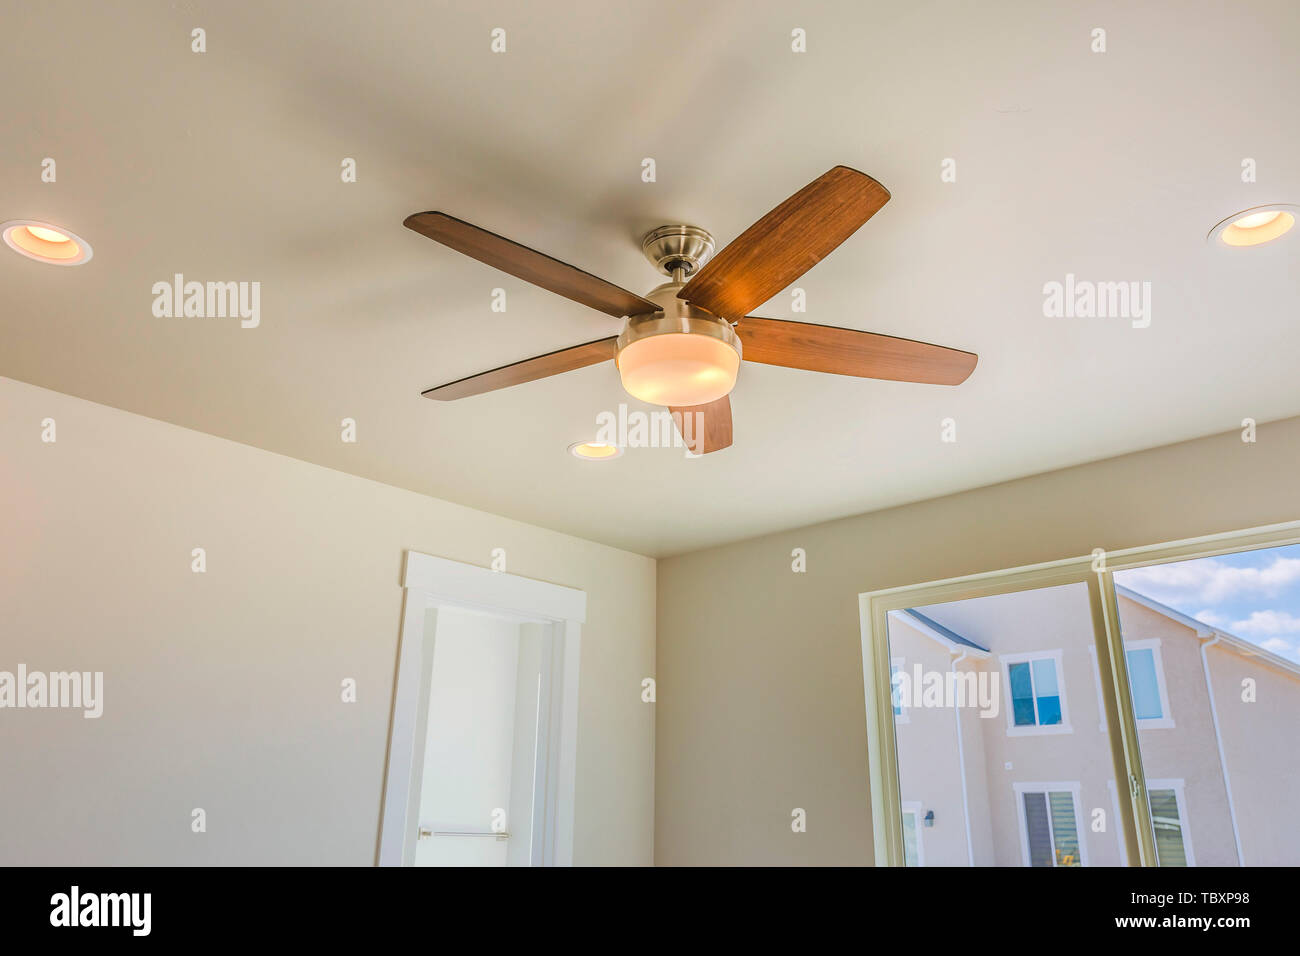 Ceiling fan with wooden five blade design and built in light Stock Photo